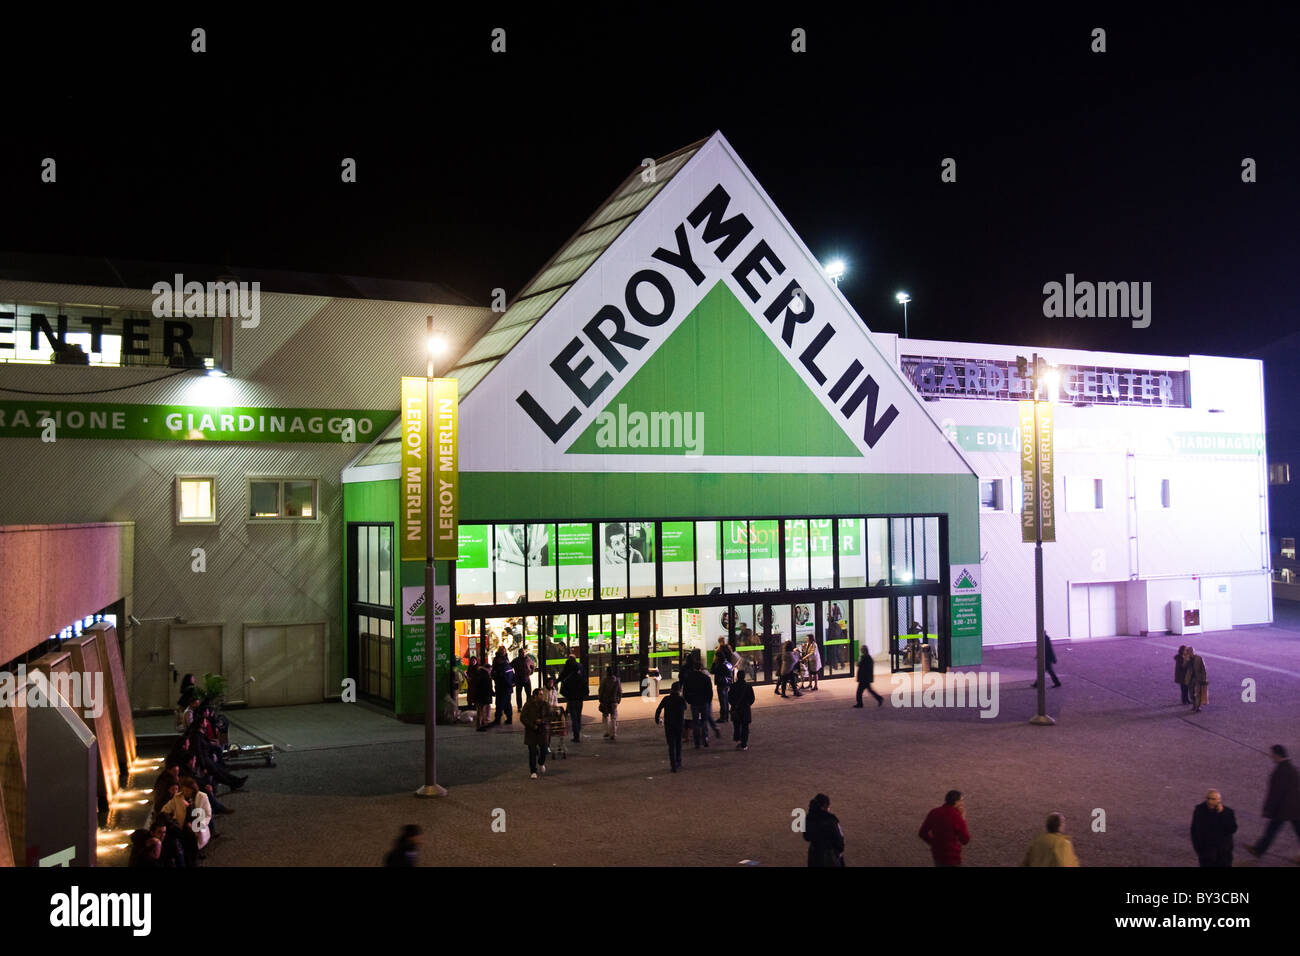 Free Leroy Merlin Home Hypermarket Hardware Company Store In Rome Italy  Europe With Store Leroy Merlin